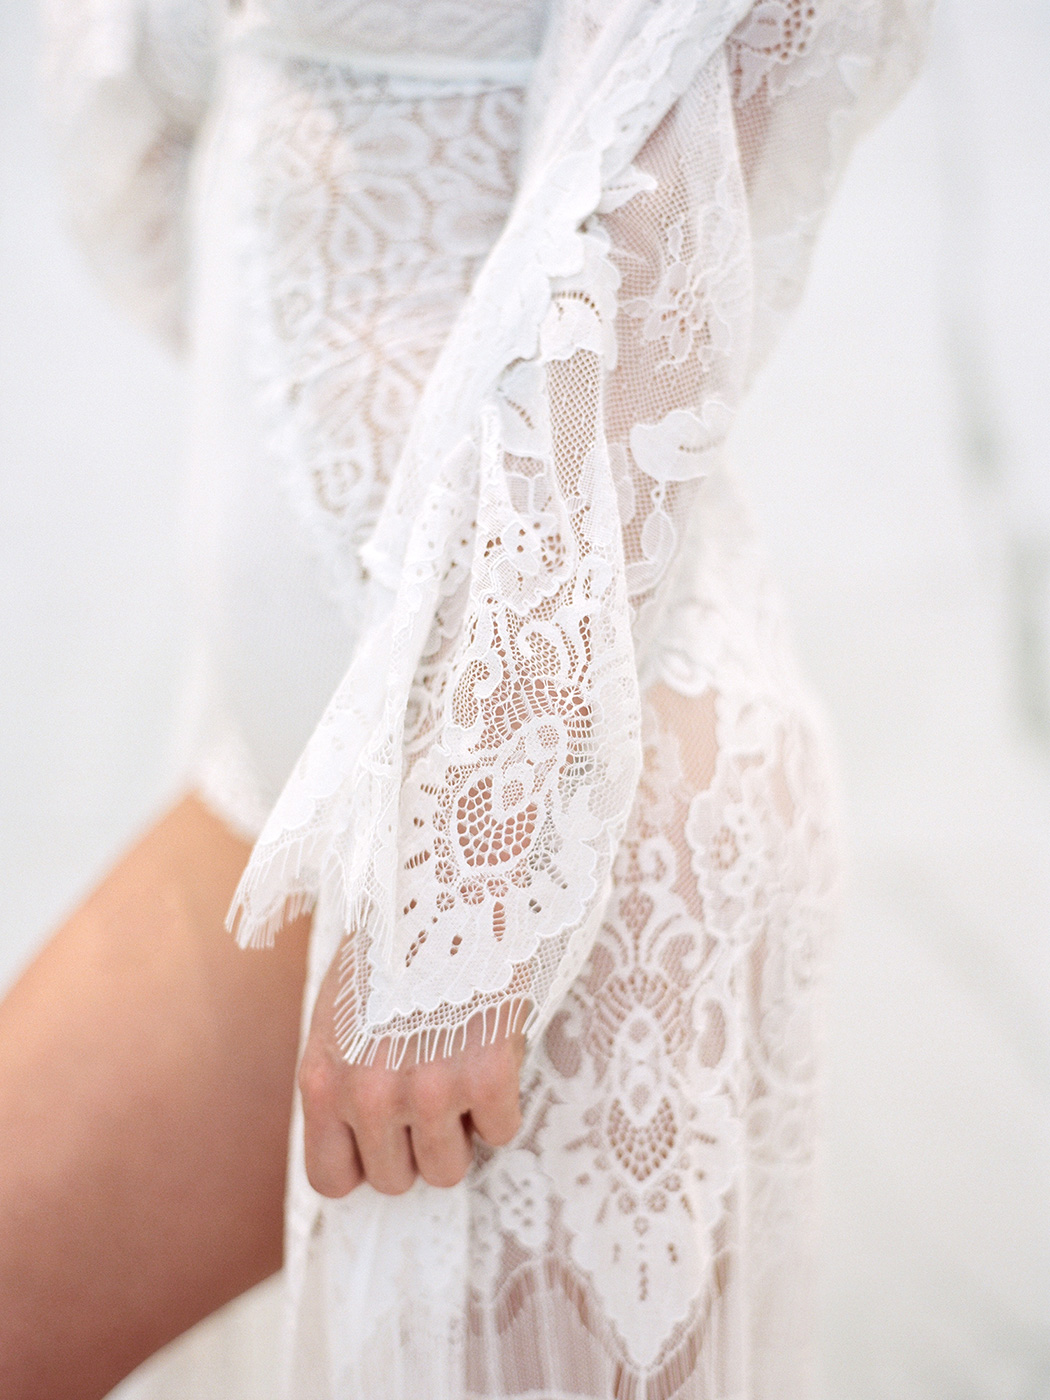 Lace Robe | Rensche Mari Photography